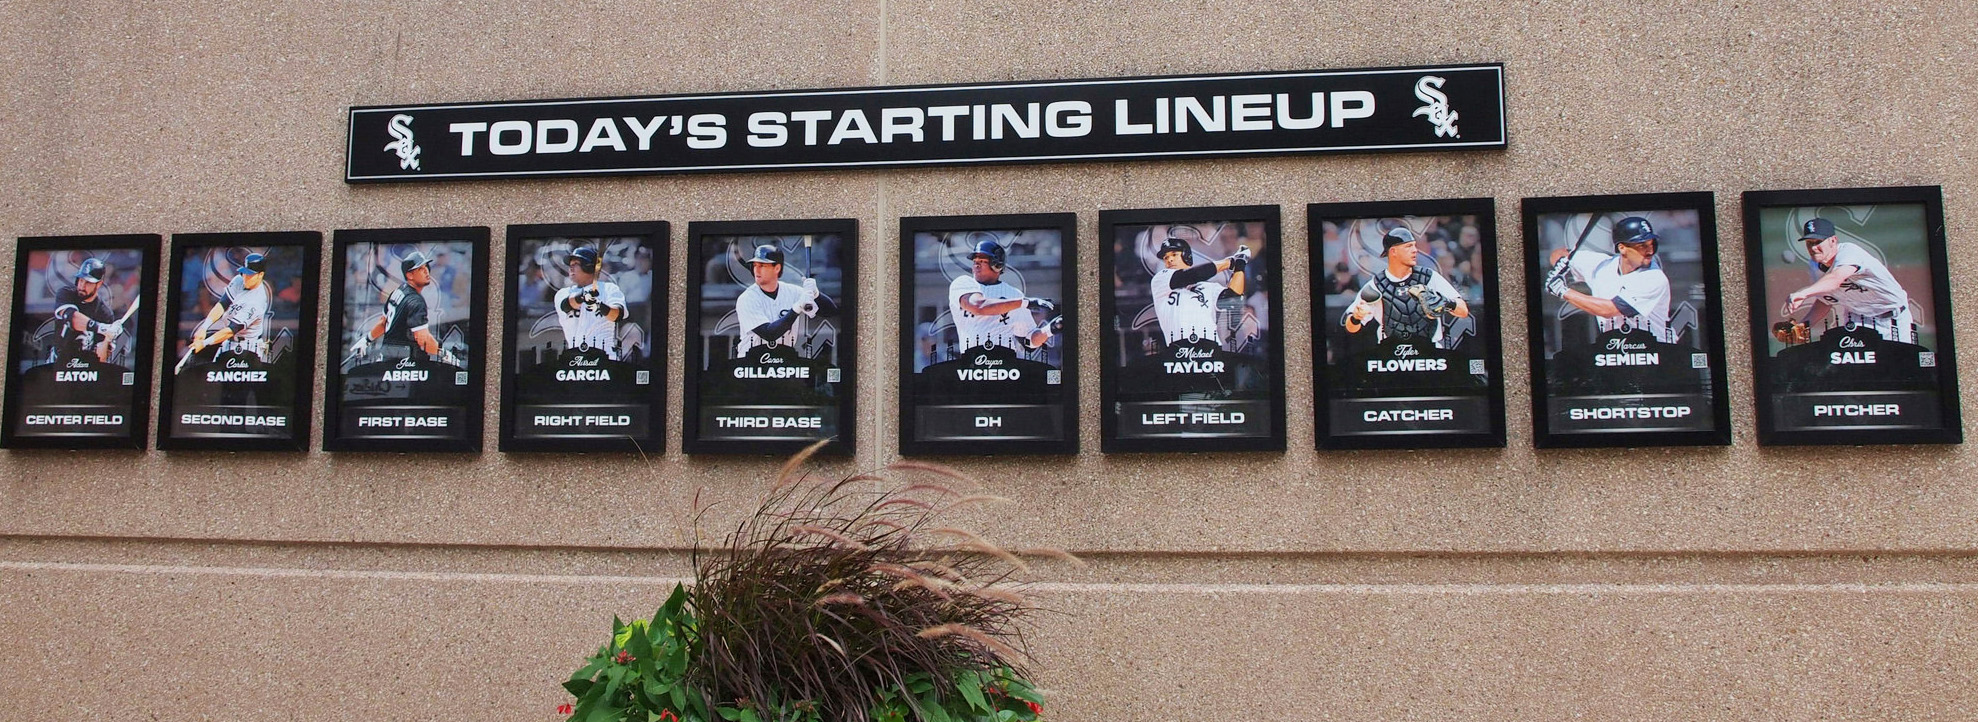 Today's lineup posted at Guaranteed Rate Field